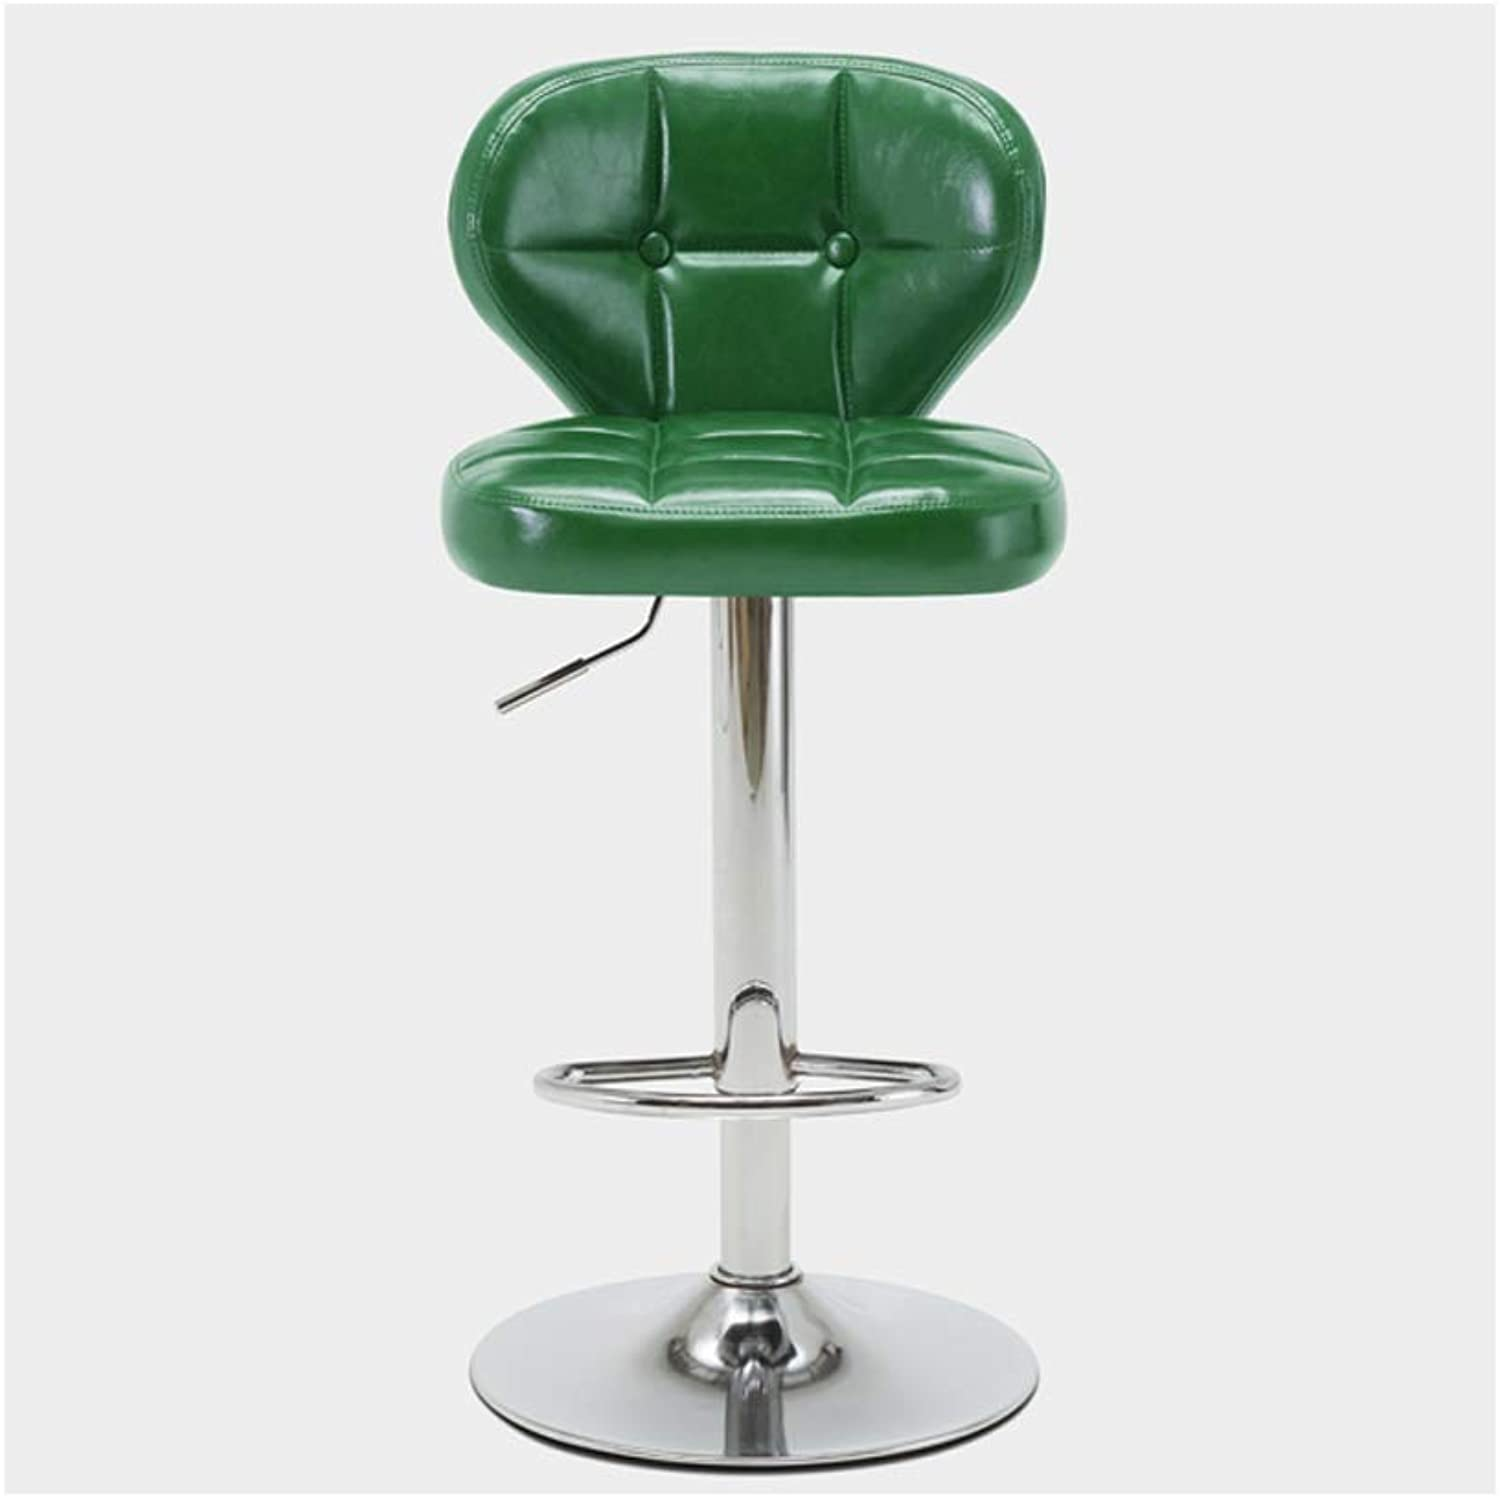 A+ Front Stool Home Lift redary Dining Chair Tough Metal Material High Elastic Sponge Filled Ergonomic Design 5 color 38.5cm60-80cm (color   Green)